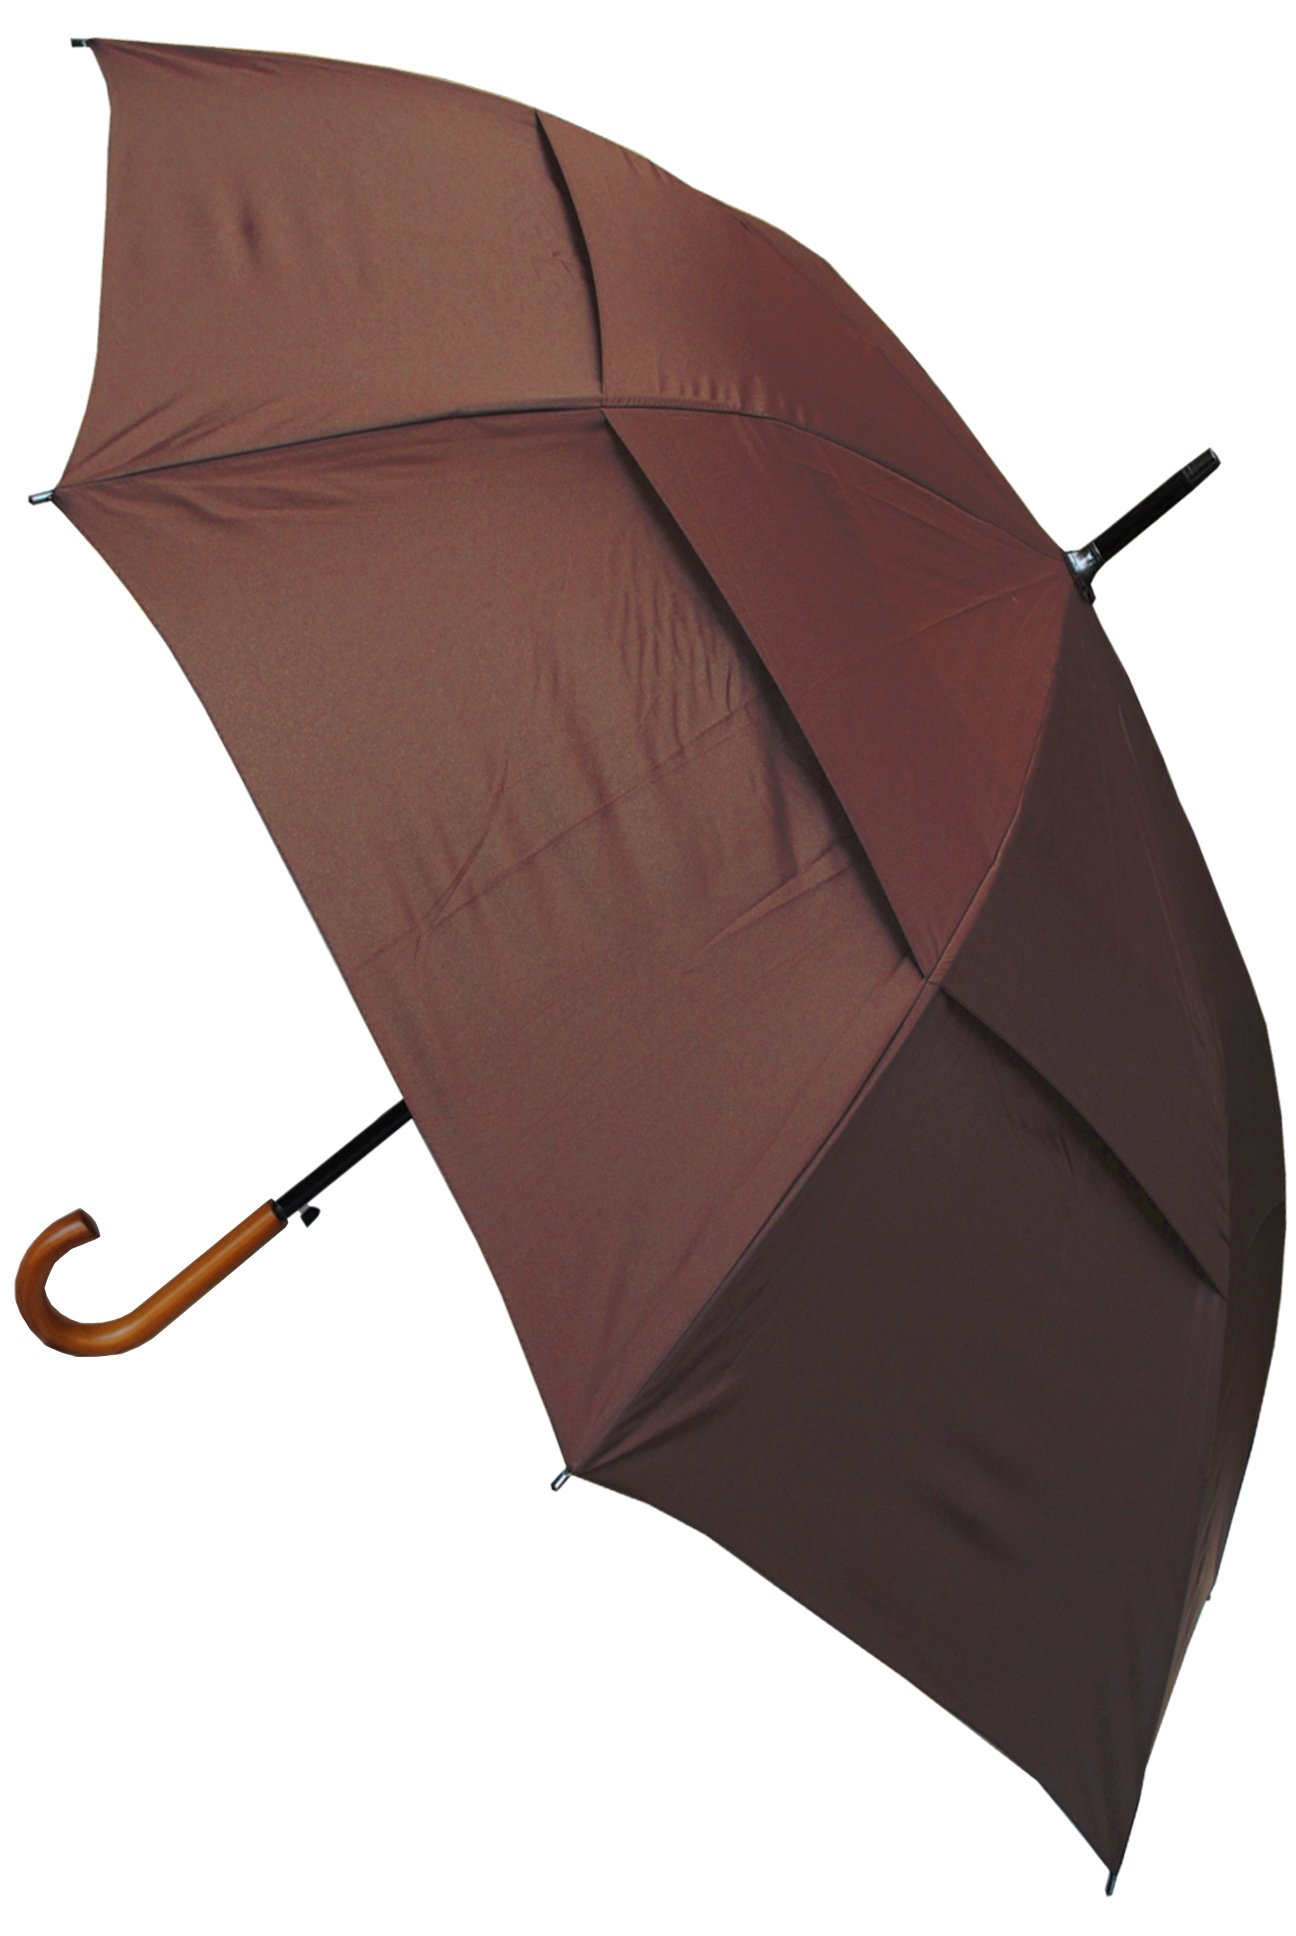 COLLAR AND CUFFS LONDON - Windproof EXTRA STRONG - City Umbrella - Vented Canopy - Auto - Solid Wood Hook Handle - Brown